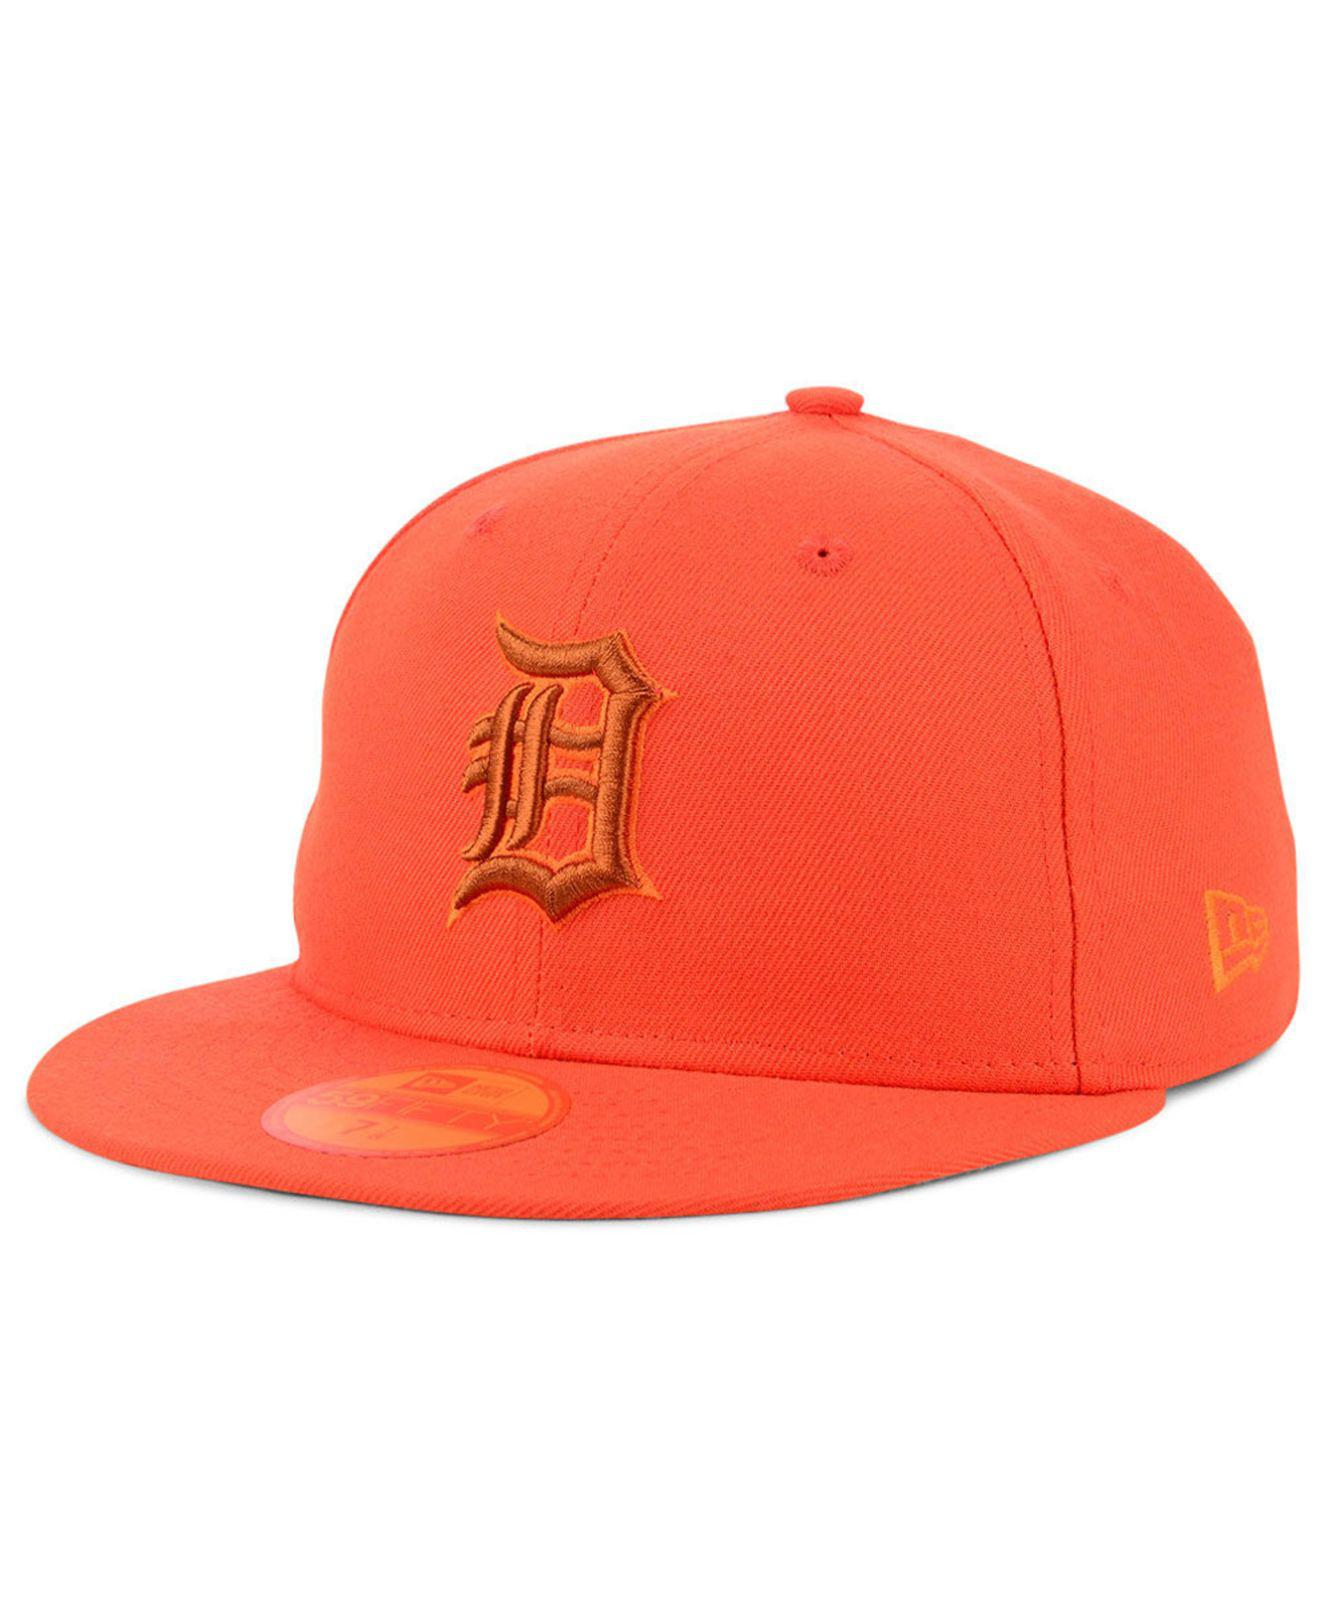 new product c3f2f 3c81e KTZ. Men s Orange Detroit Tigers Prism Color Pack 59fifty Fitted Cap